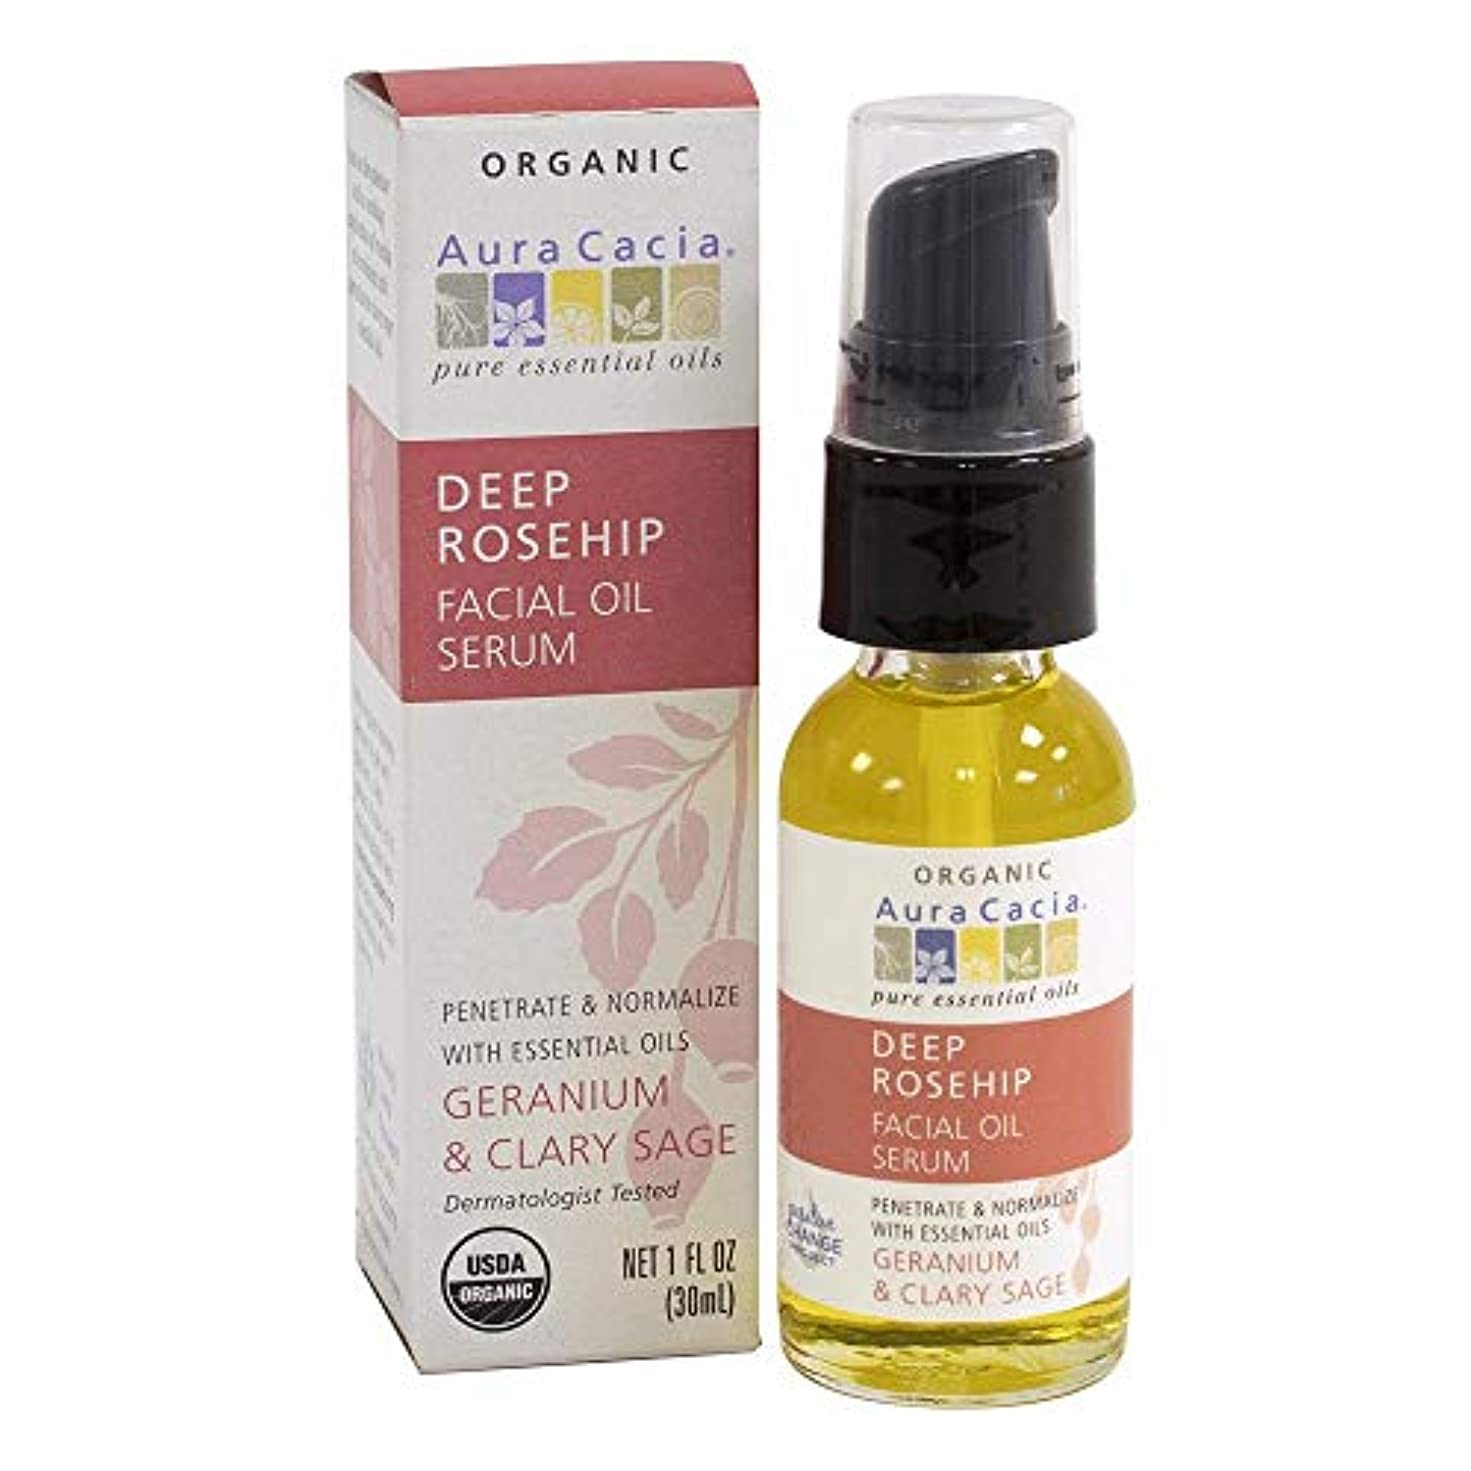 言い聞かせるストレス安らぎAura Cacia, Organic Deep Rosehip Essentials Facial Oil Serum, Geranium & Clary Sage, 1 fl oz (30 ml)